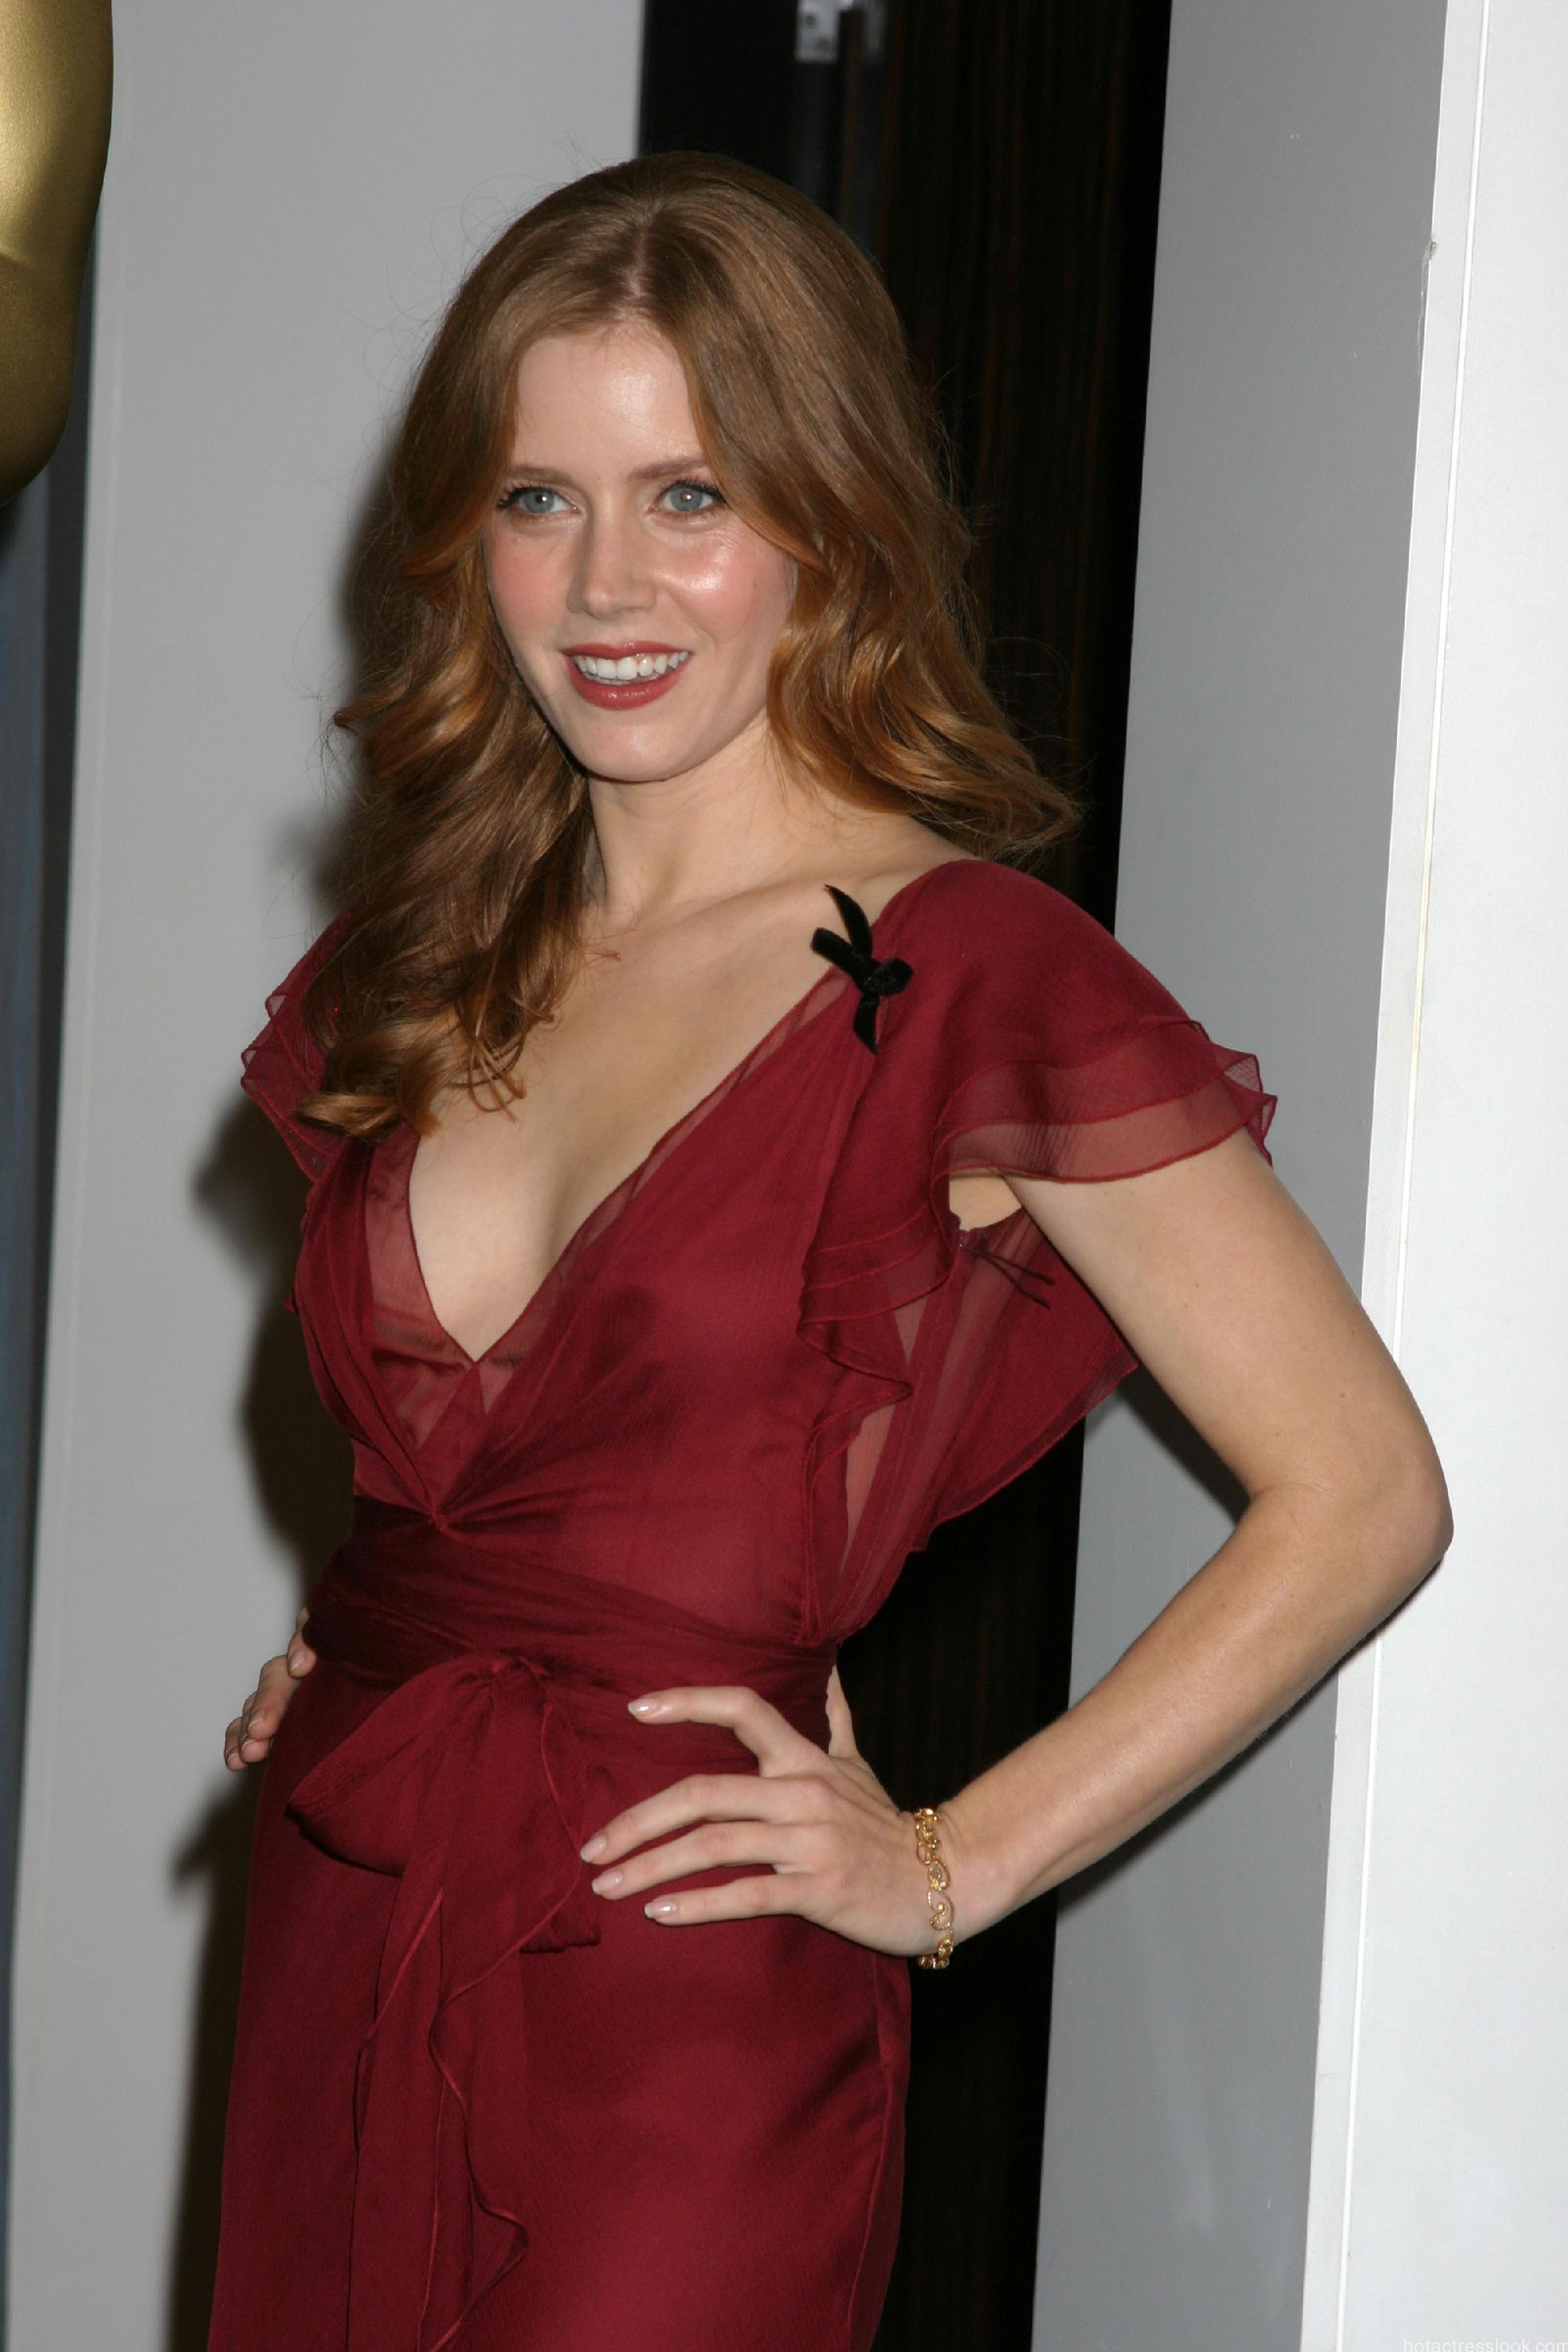 Amy Adams arrive at the Oscar Nominees Luncheon at the Beverly Hilton Hotel Beverly Hills, California - 13.02.06 Credit: Nikki Nelson / WENN